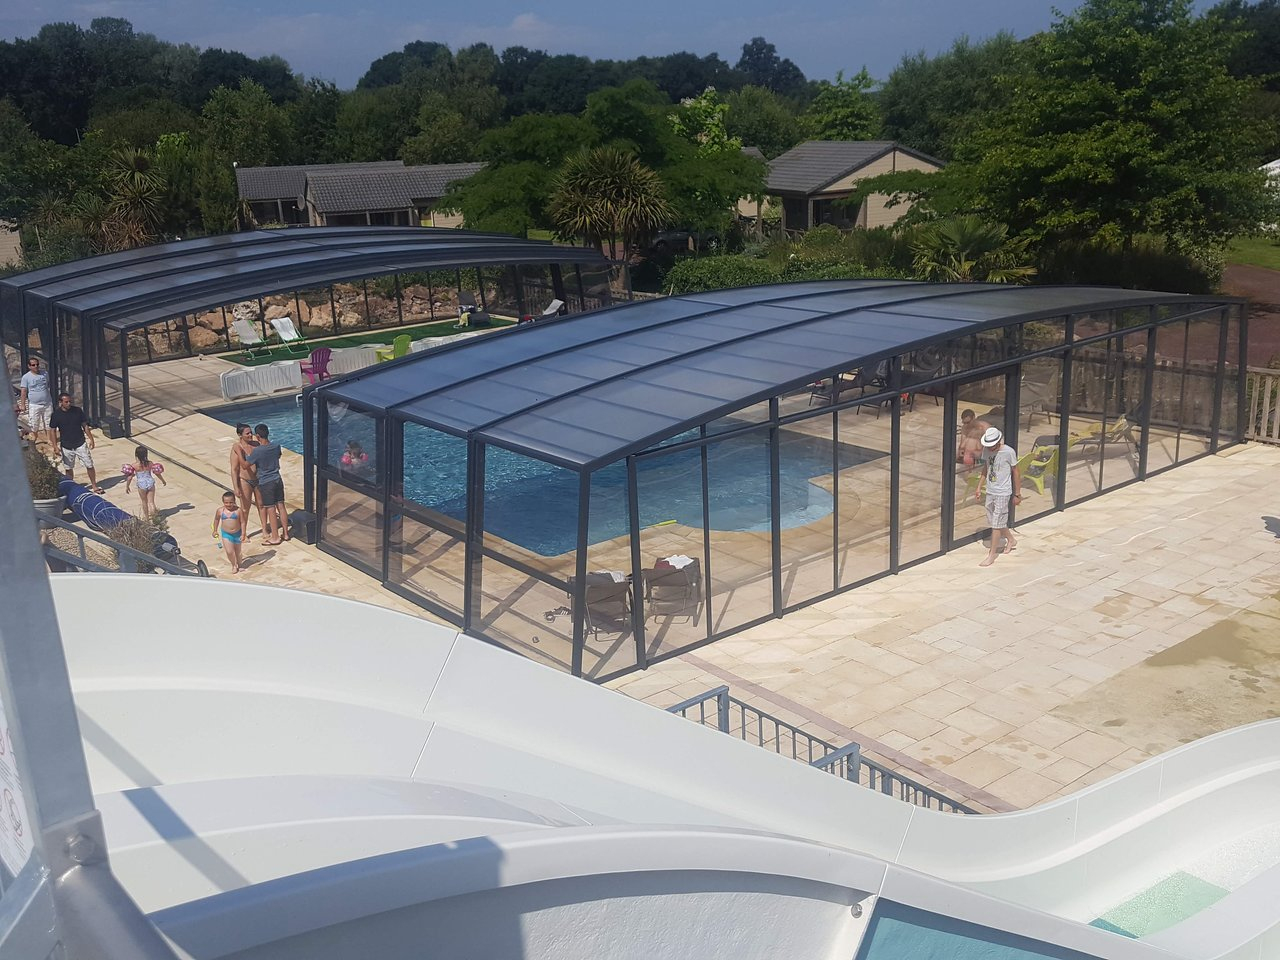 The Best Hotels In Malestroit For 2020 (From $46) - Tripadvisor pour Piscine Malestroit